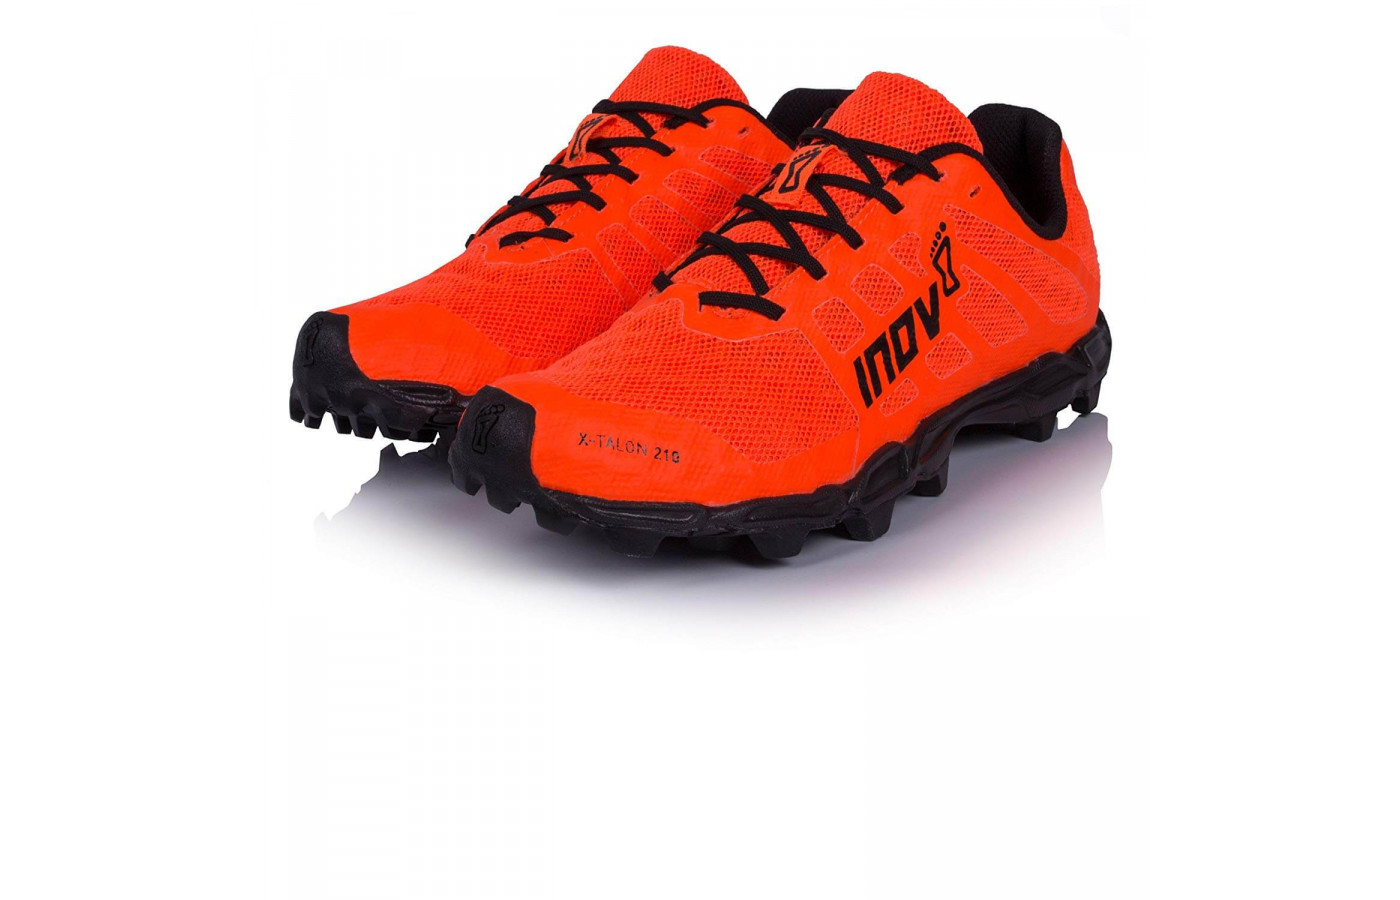 Inov-8 X-Talon 210 Pair